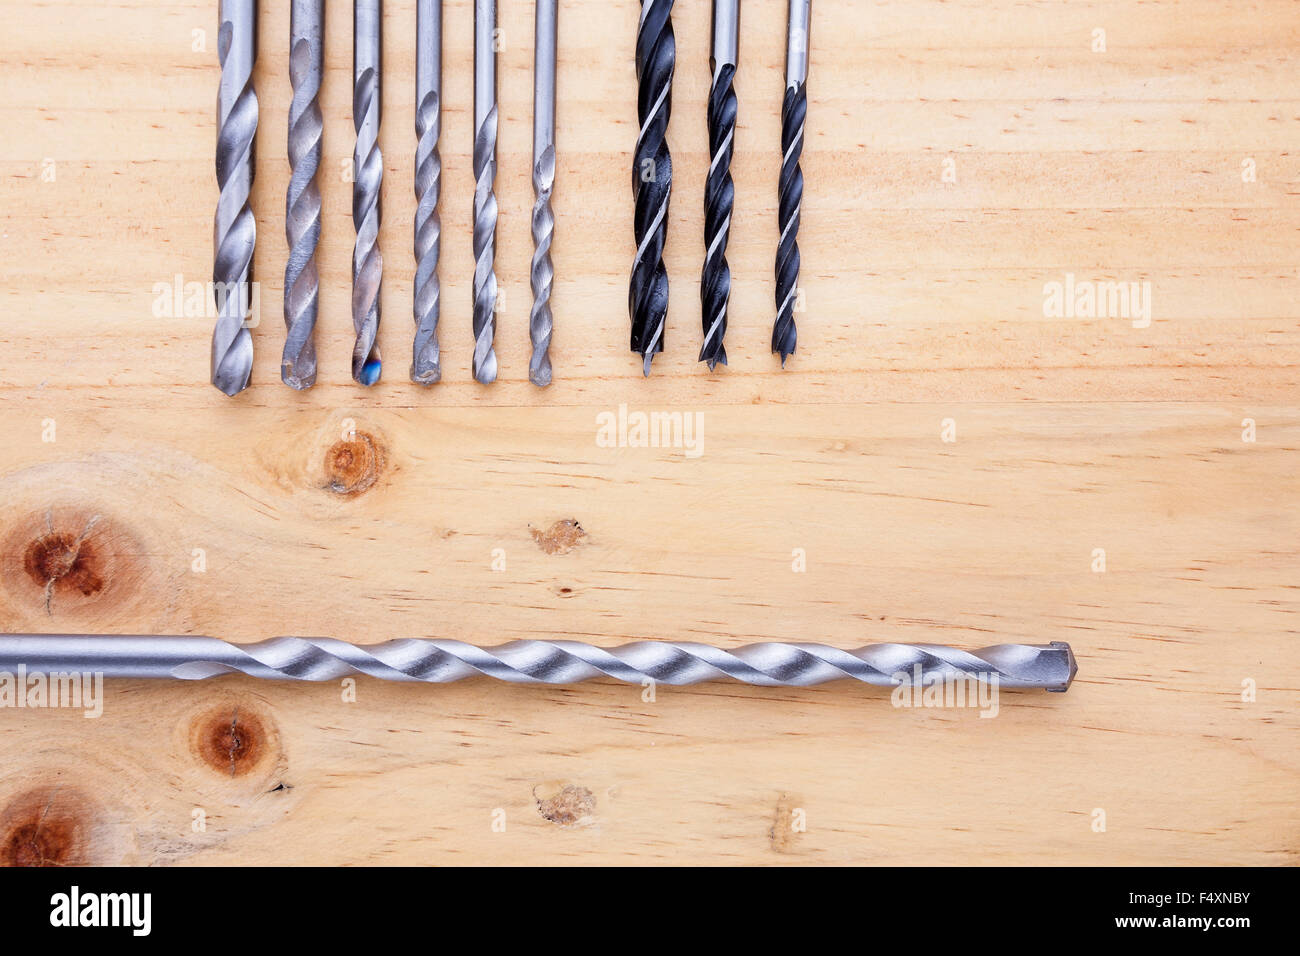 Difference kind of countersinks on wooden table - Stock Image